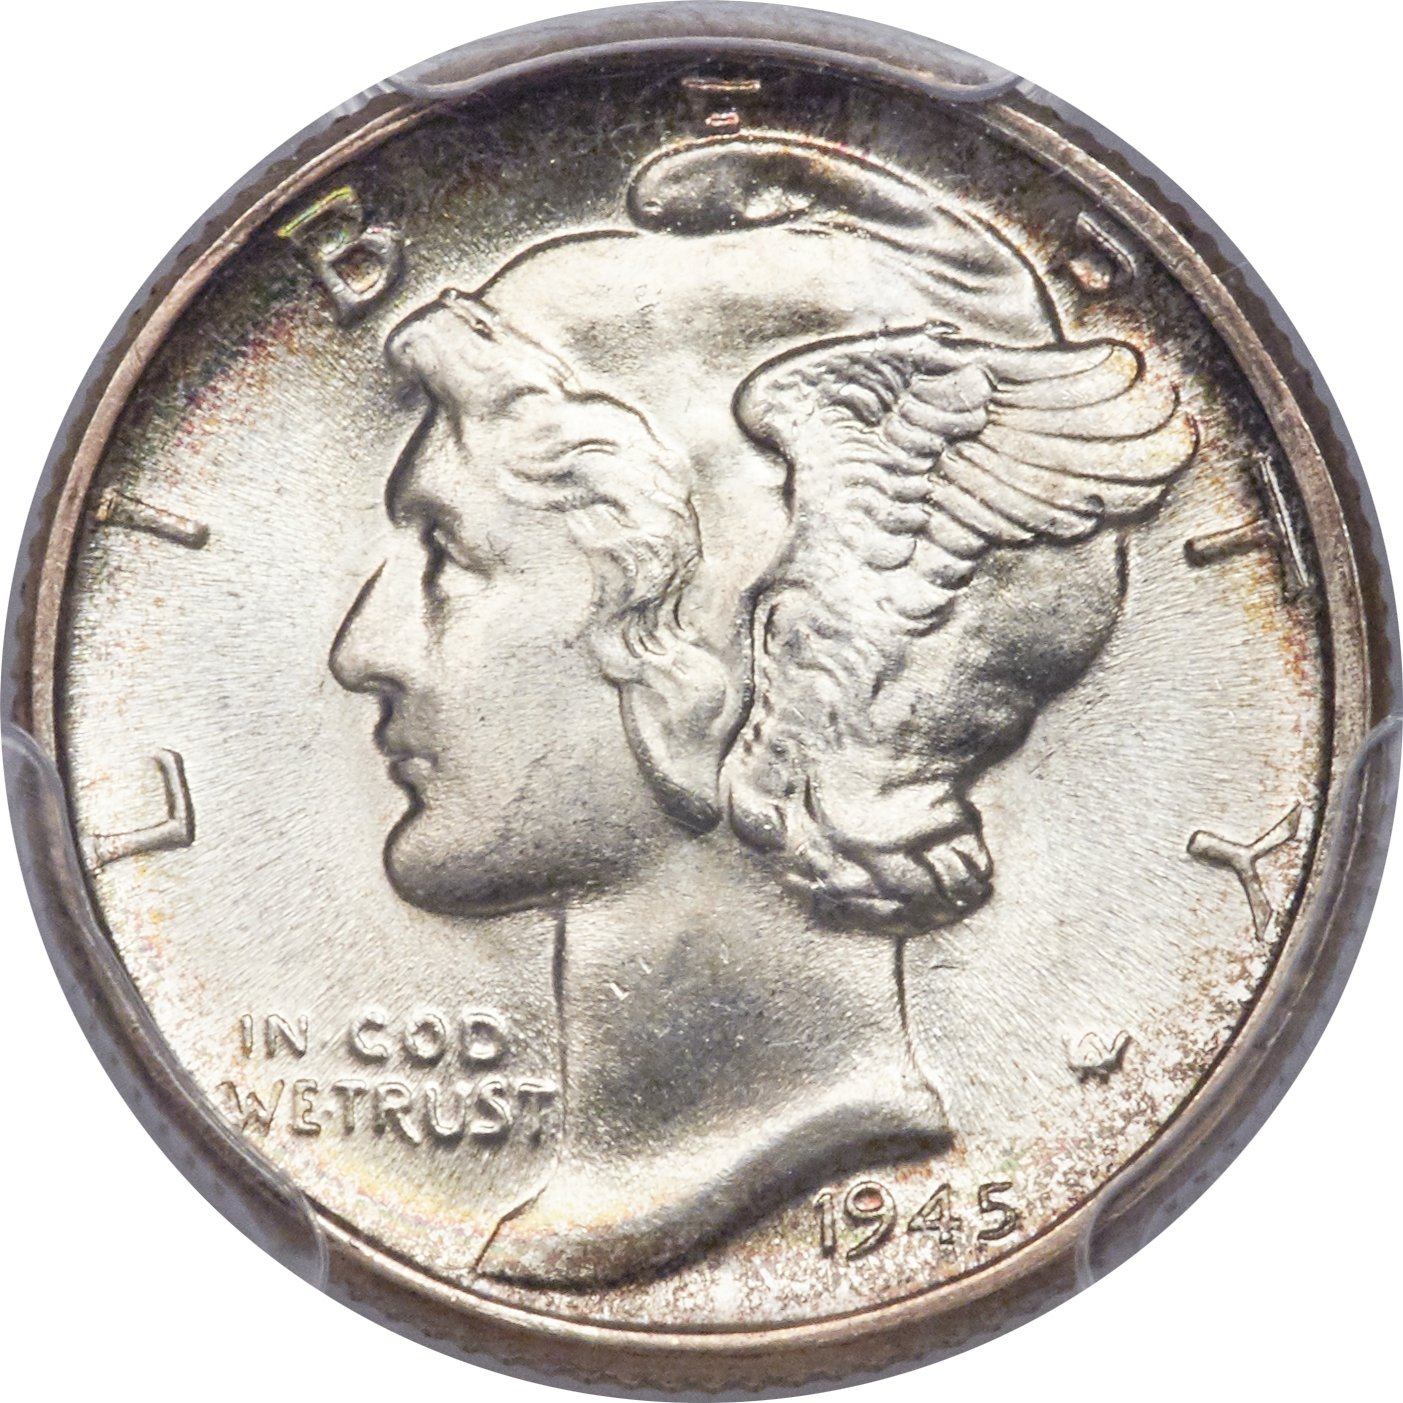 With a mintage of more than 159 million, the 1945 Philadelphia dime is the fifth most common Winged Liberty Head (Mercury) dime. But sharply struck it become a rarity — the